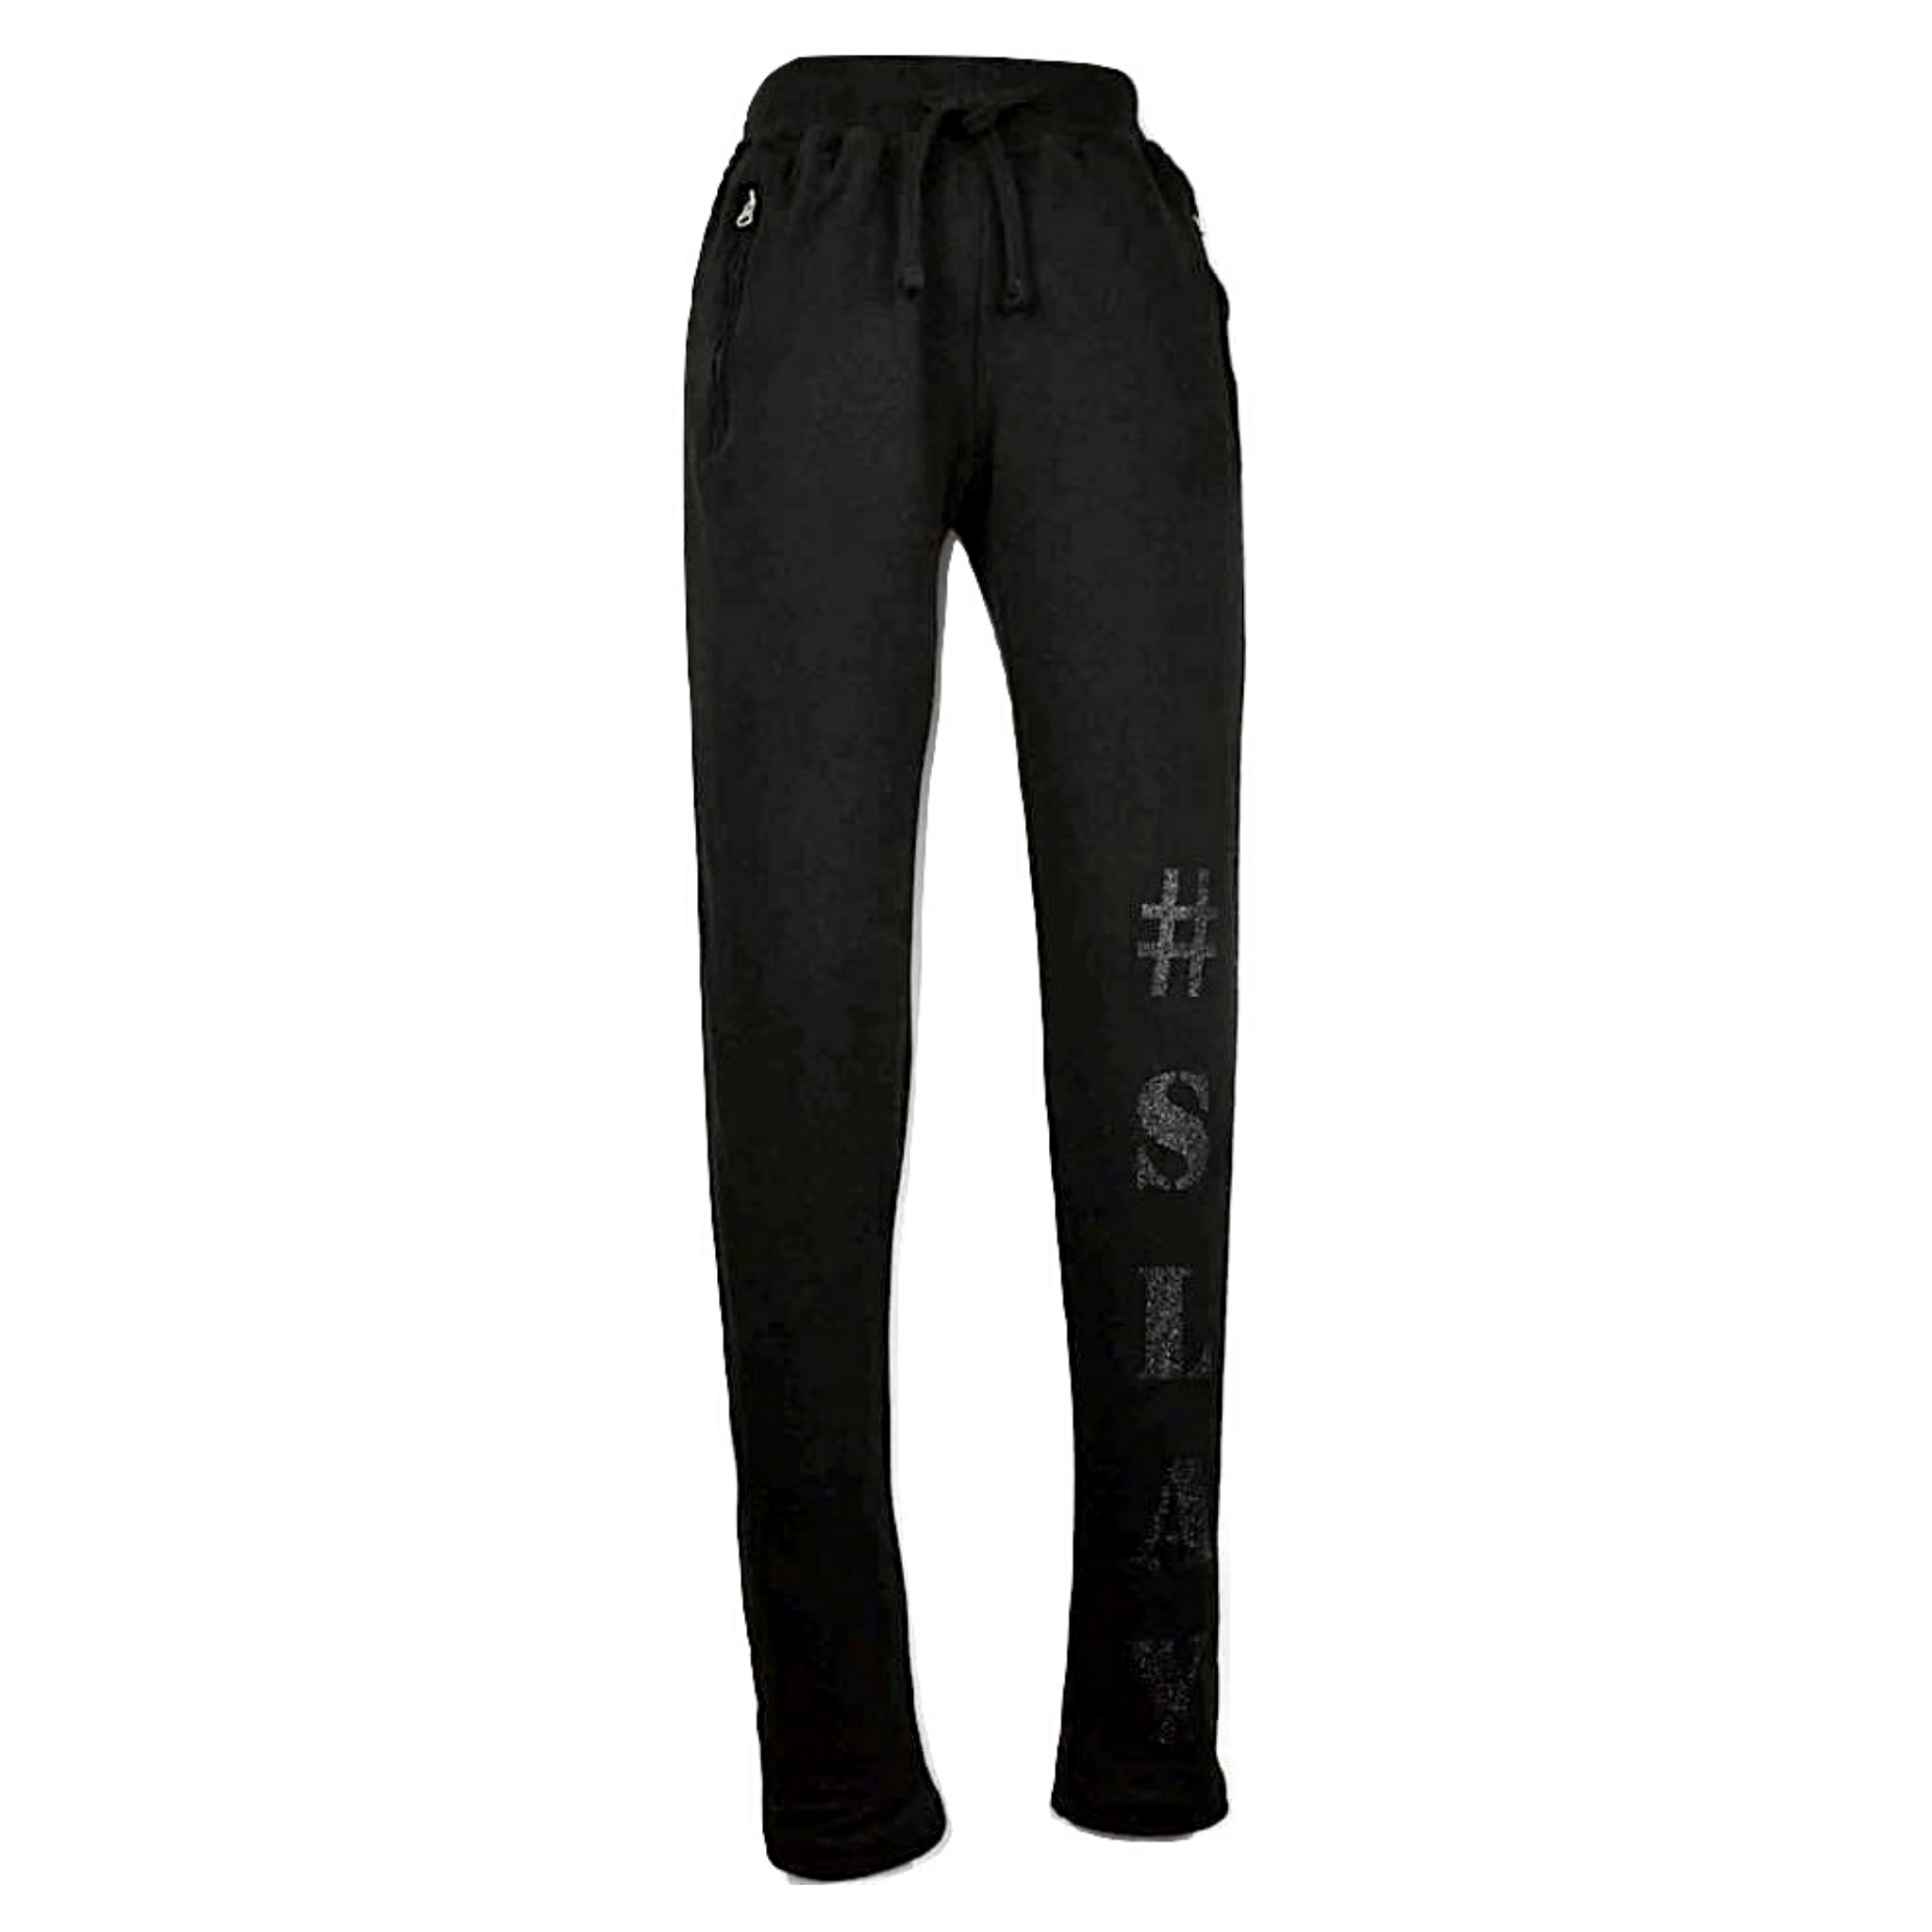 Limited Edition Black #SLAY Track Pants - DISEGNO MIO